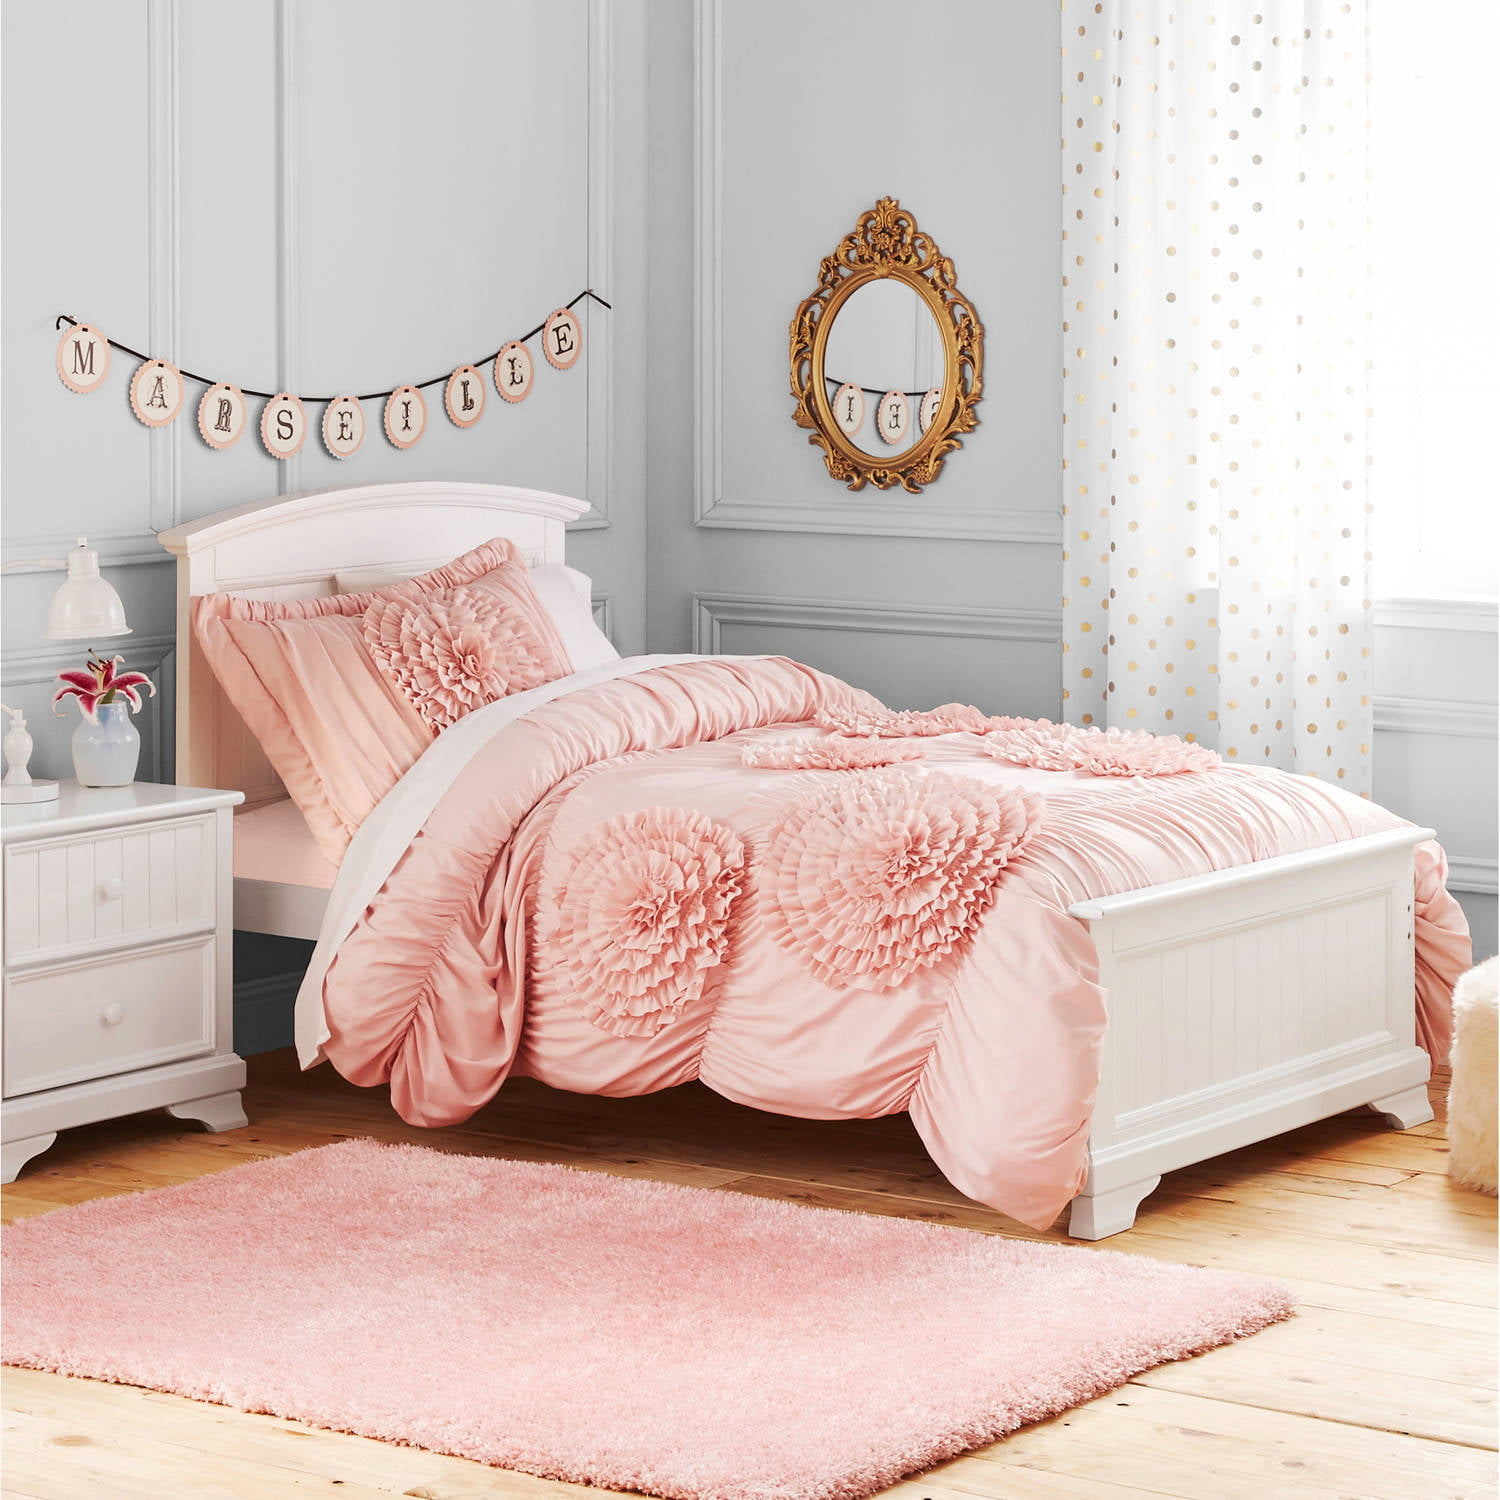 Better Homes and Gardens Kids Ruffled Flowers Bedding forter